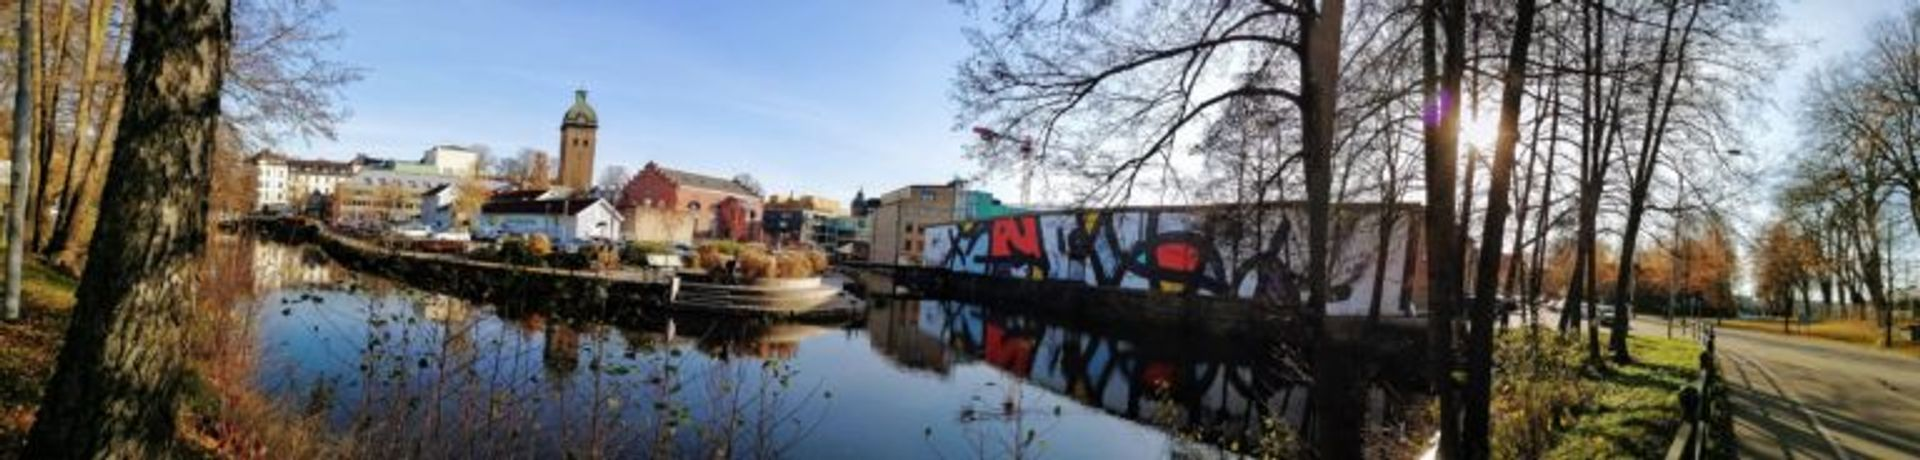 Panoramic view of Borås cityscape with colourful abstract mural by JM Rizzi.